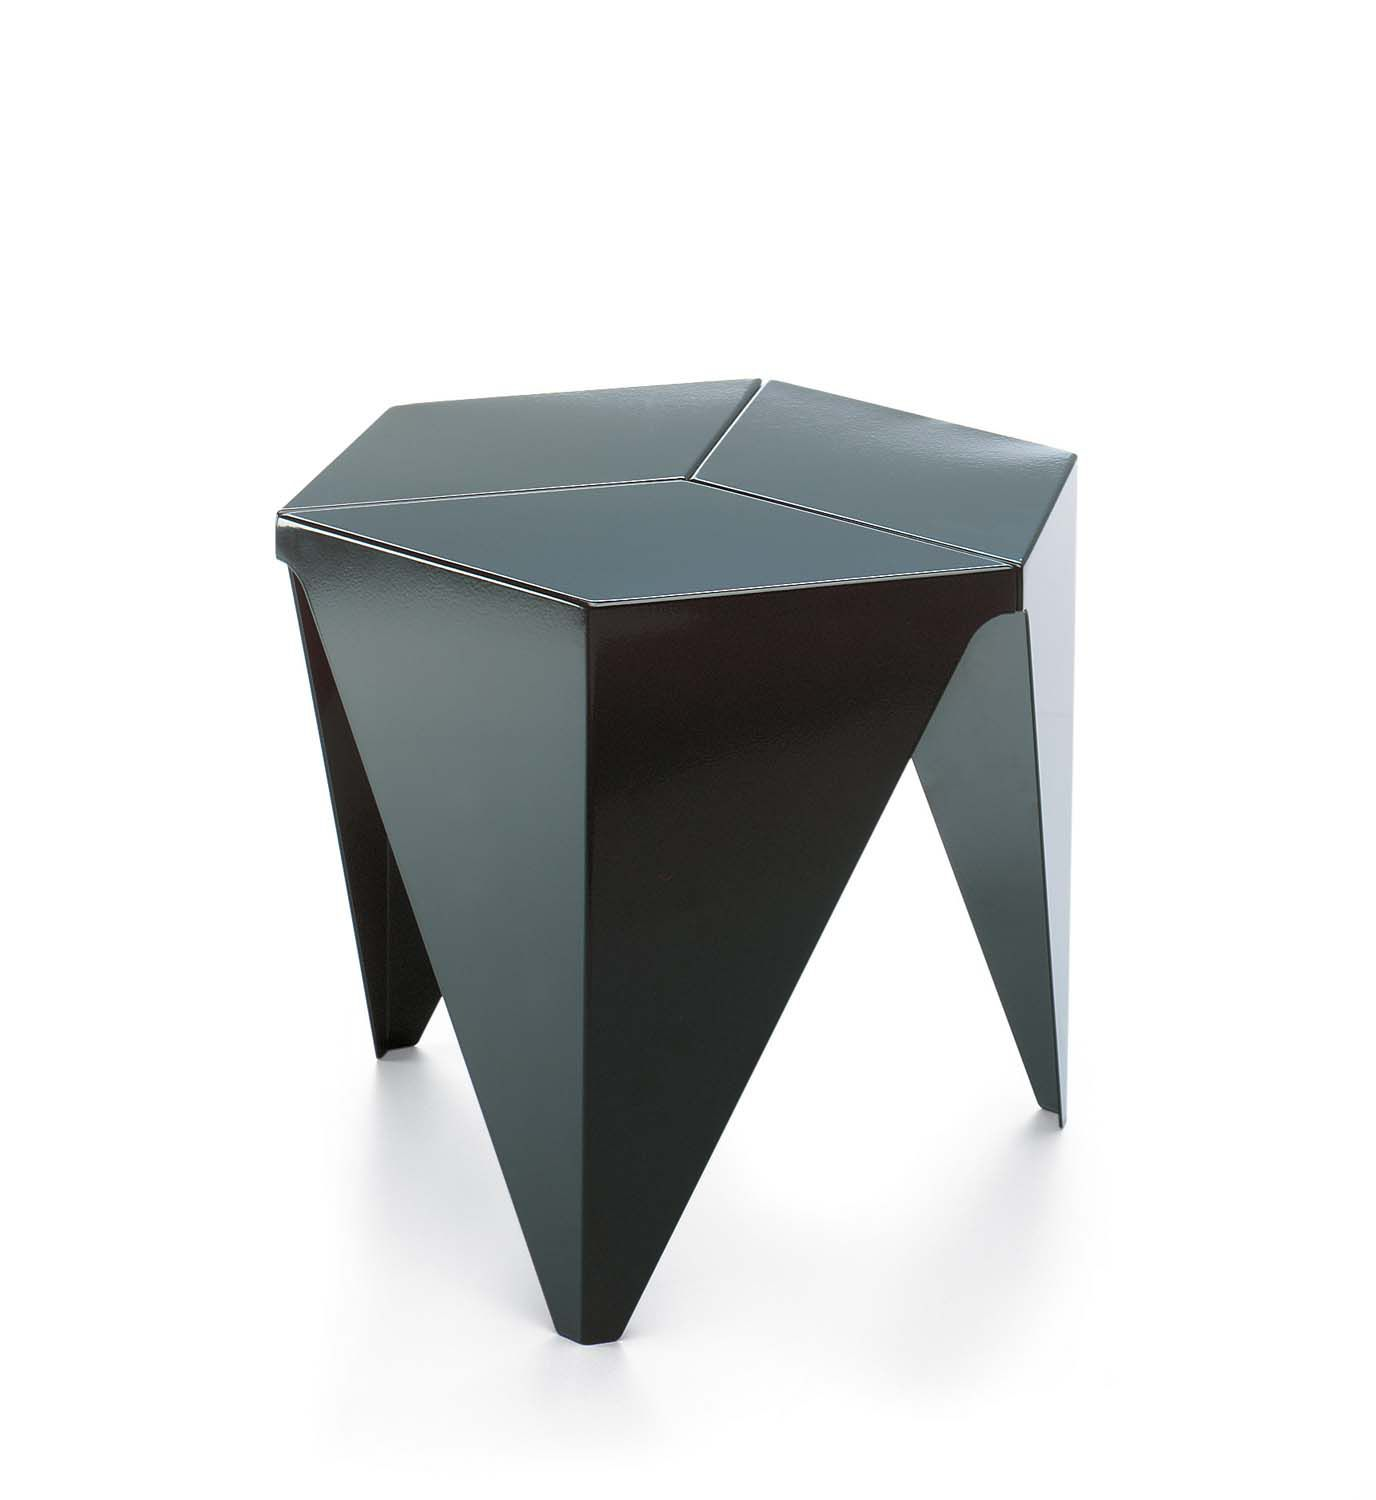 Contemporary side table aluminum hexagonal by Isamu Noguchi